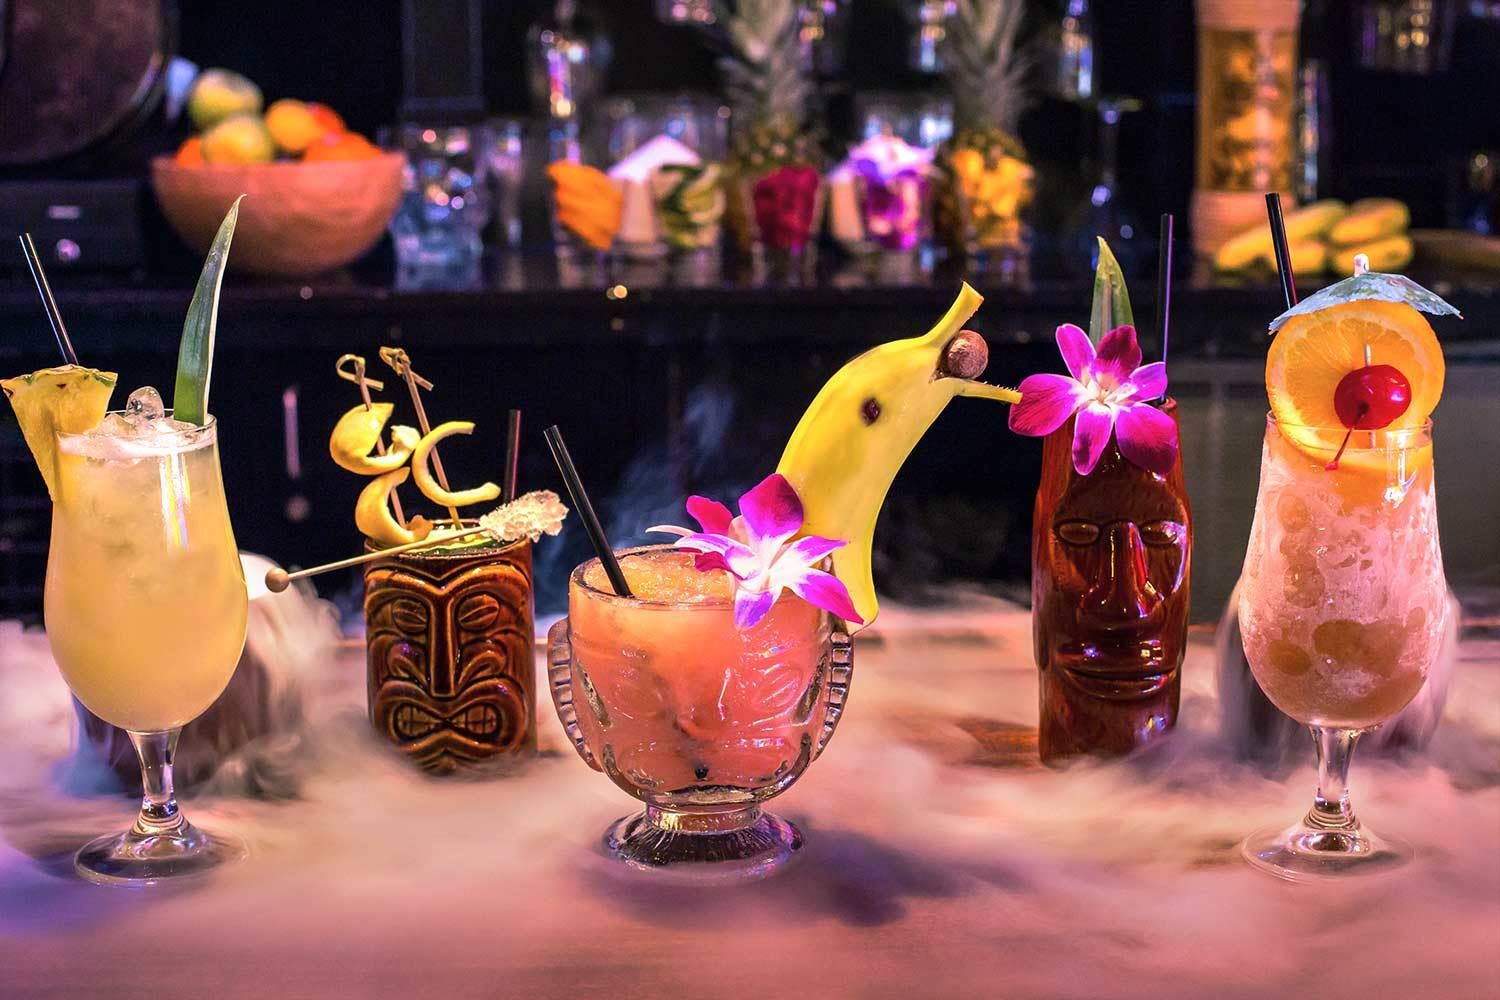 Cat Eye Club tiki drinks, San Diego, 2016